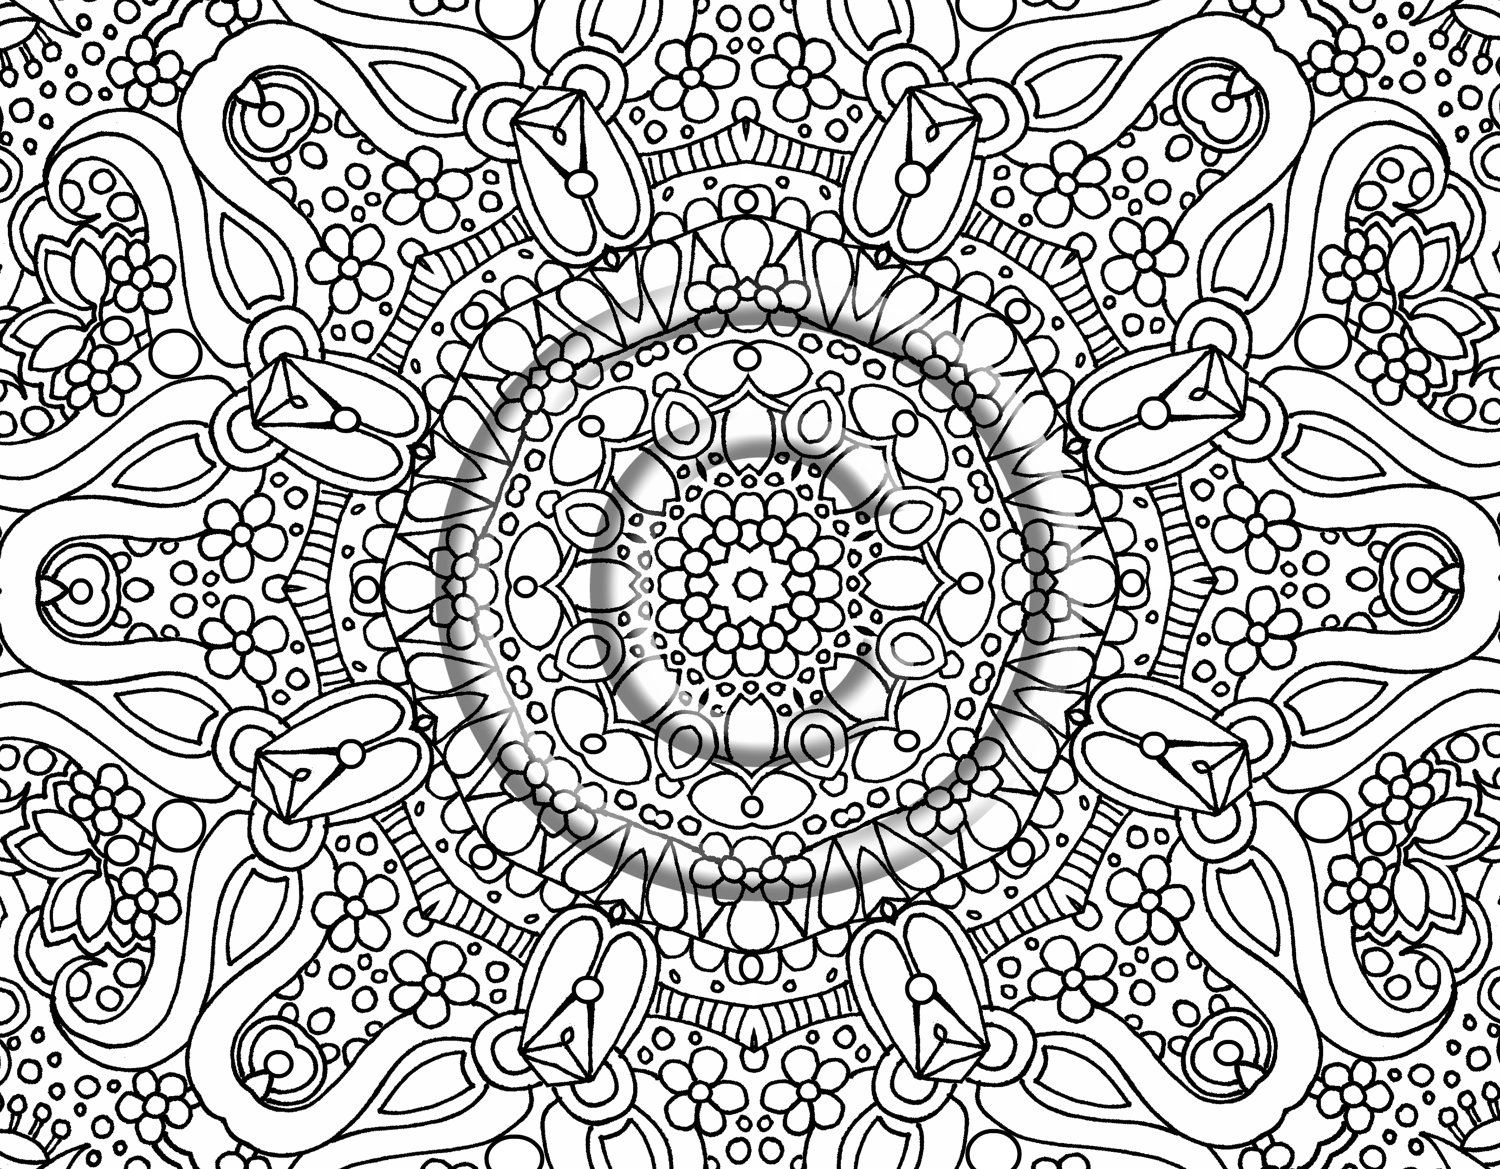 Free coloring pages adults printable - Hard Coloring Pages Hard Coloring Pages Free Adult Coloring Sheets